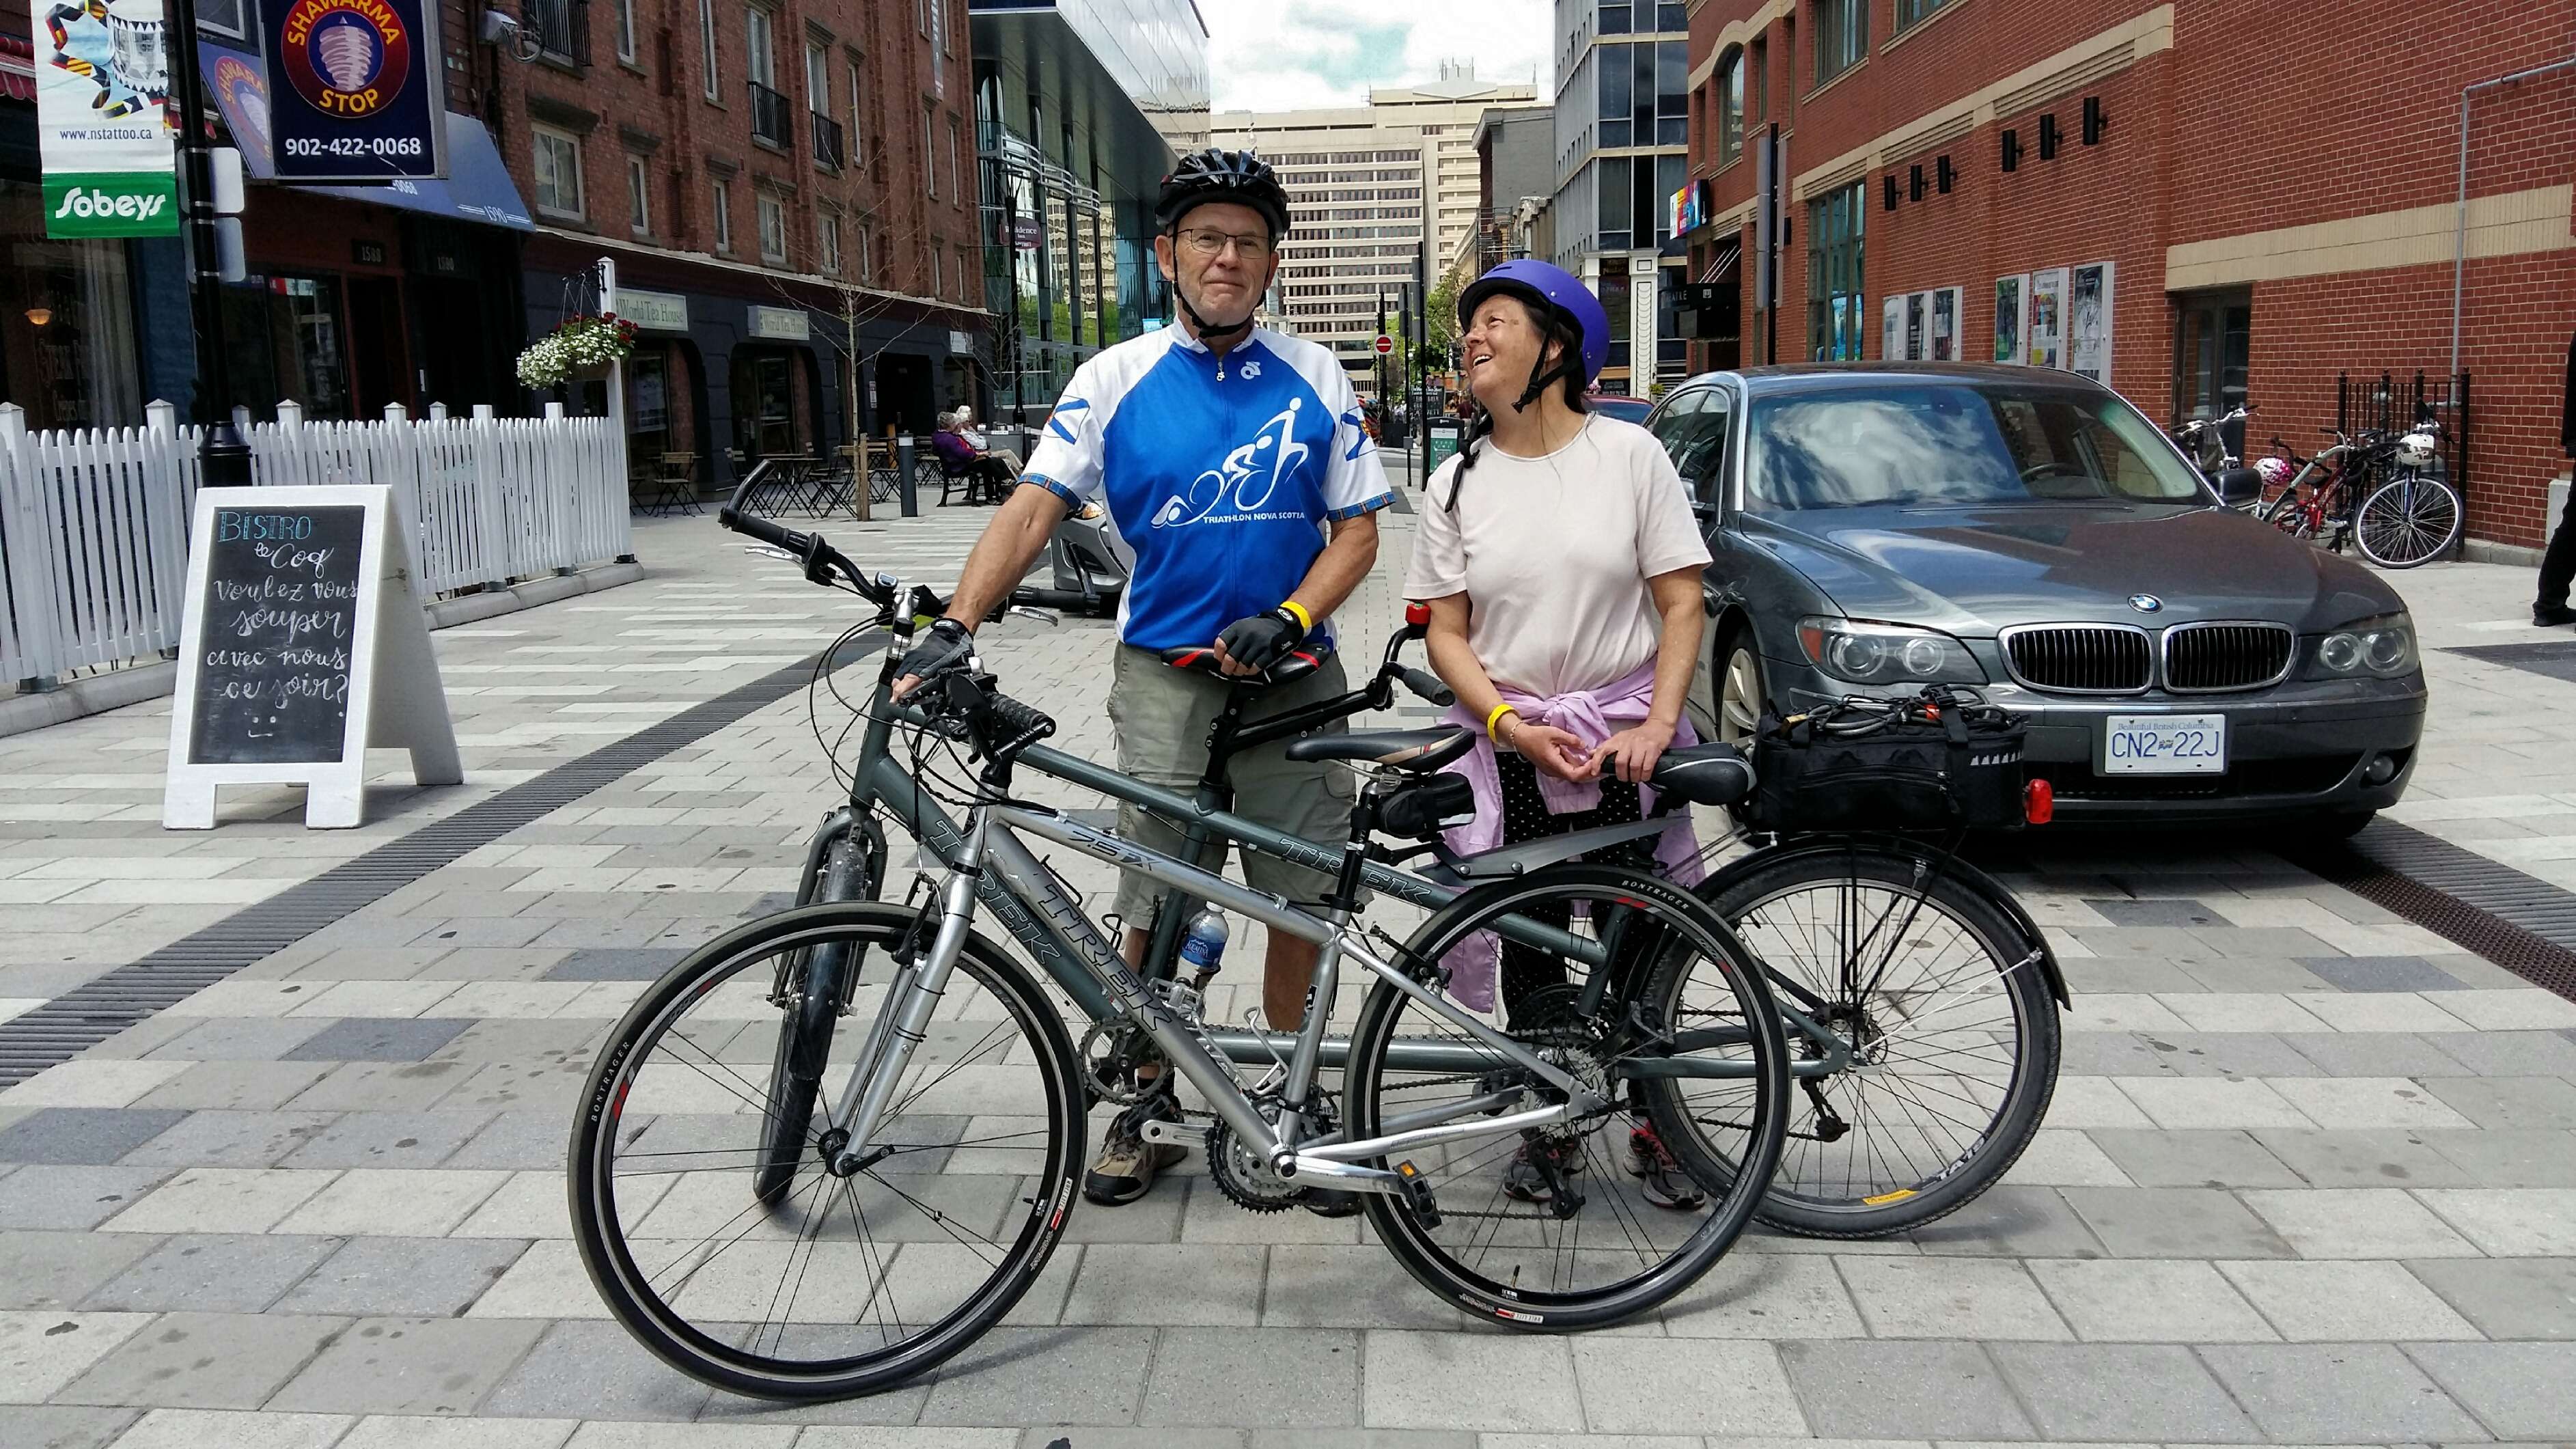 A man and woman stand with a tandem bike and standard bike in front of them on a downtown street